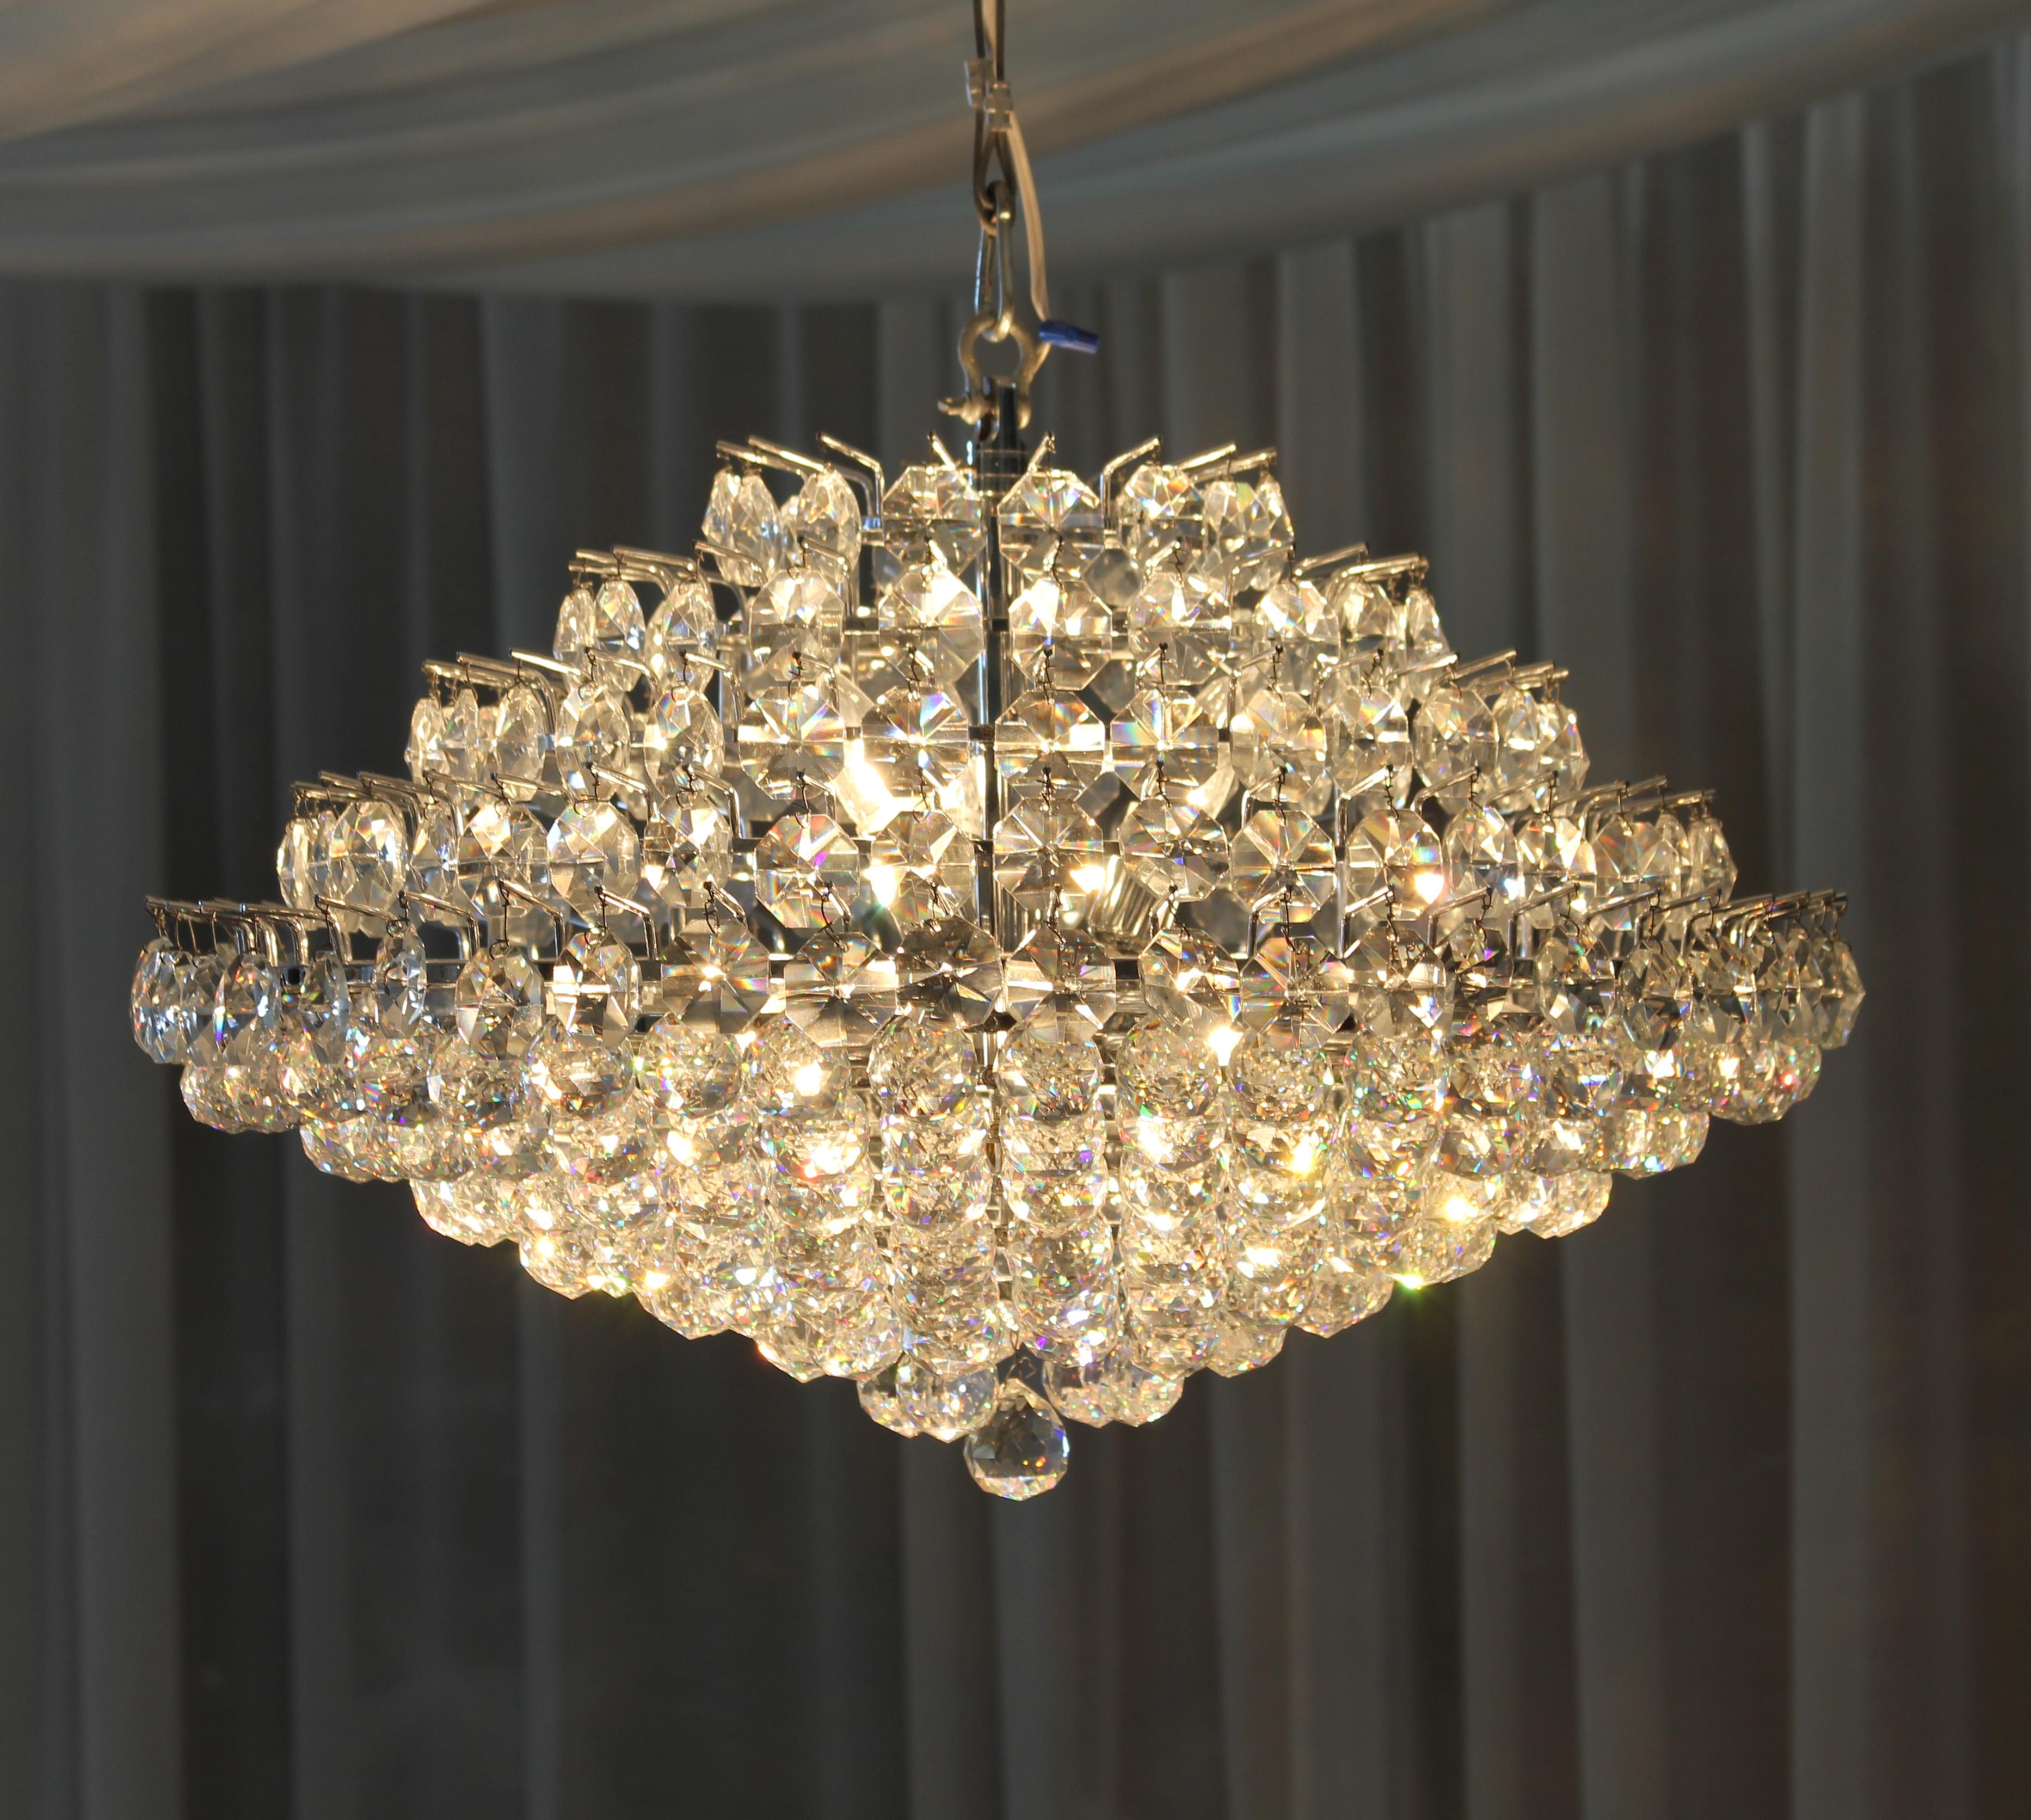 Chandelier Elegant Chandeliers 2017 Design Catalog Elegant With Sparkly Chandeliers (Image 8 of 25)